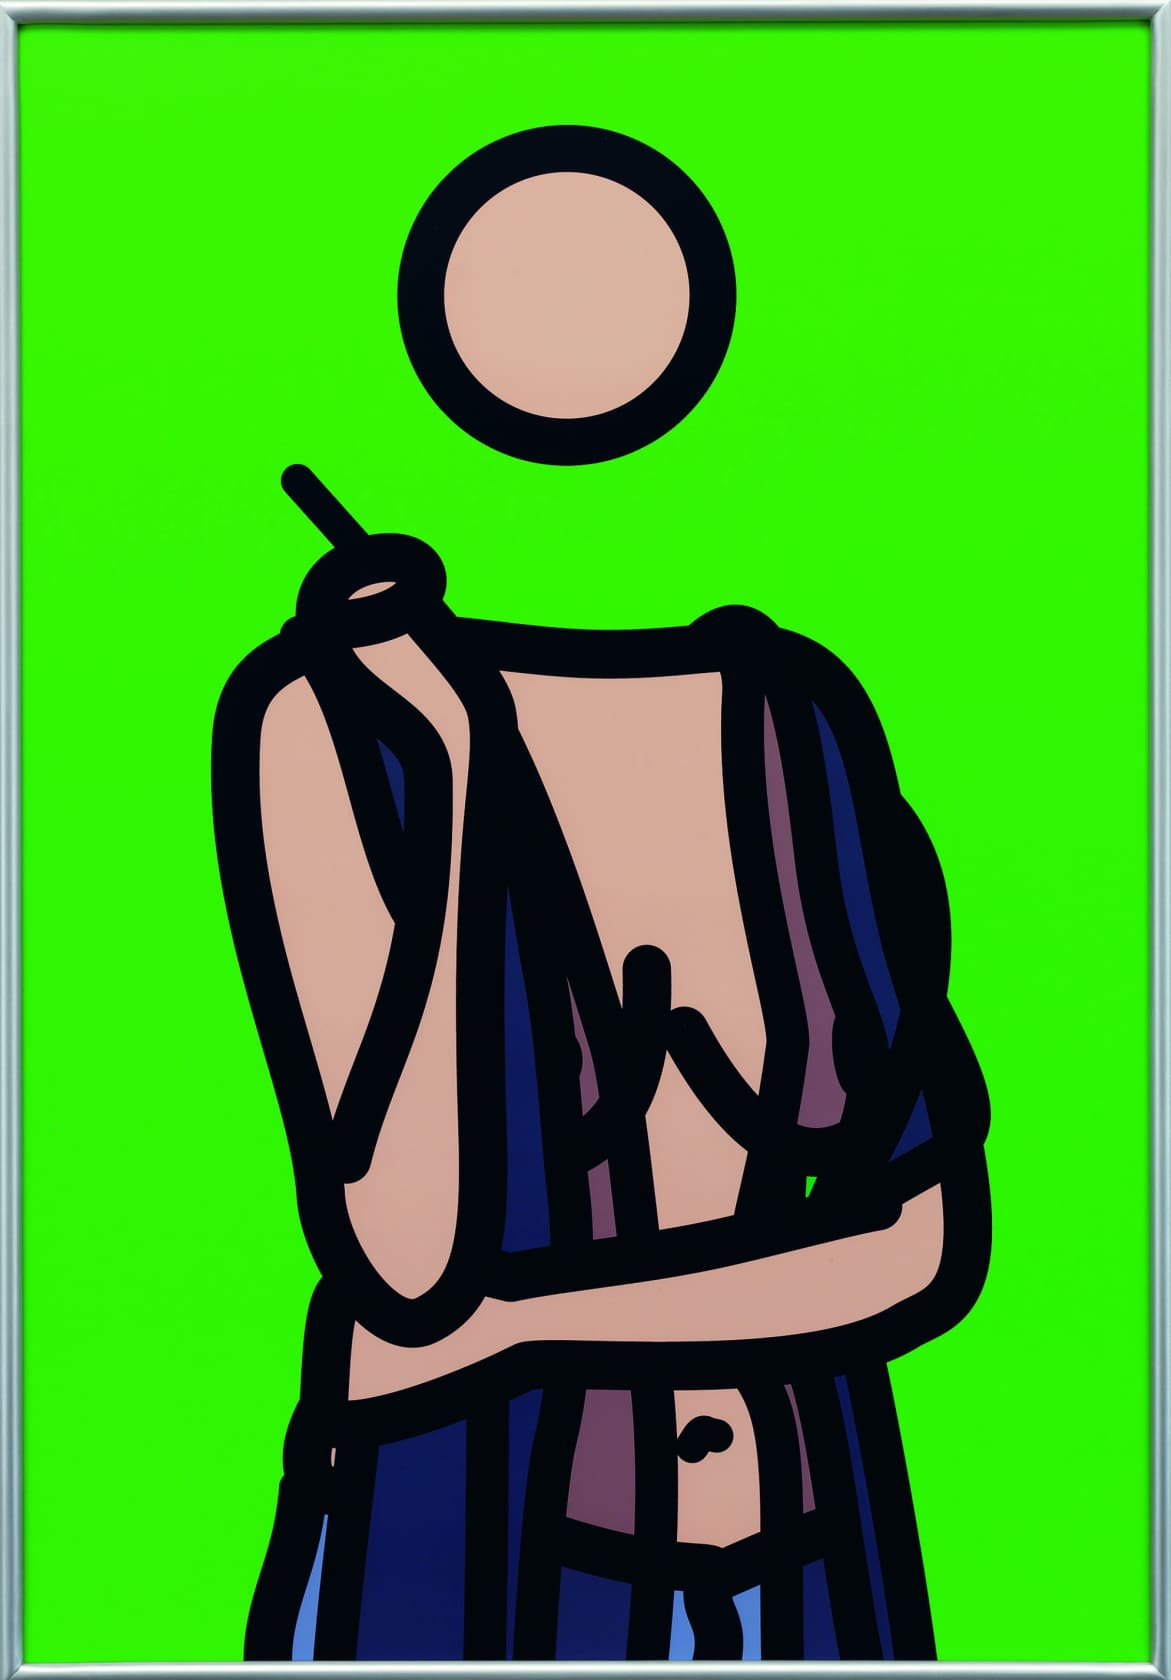 Julian Opie, Ruth with Cigarette 5, 2005